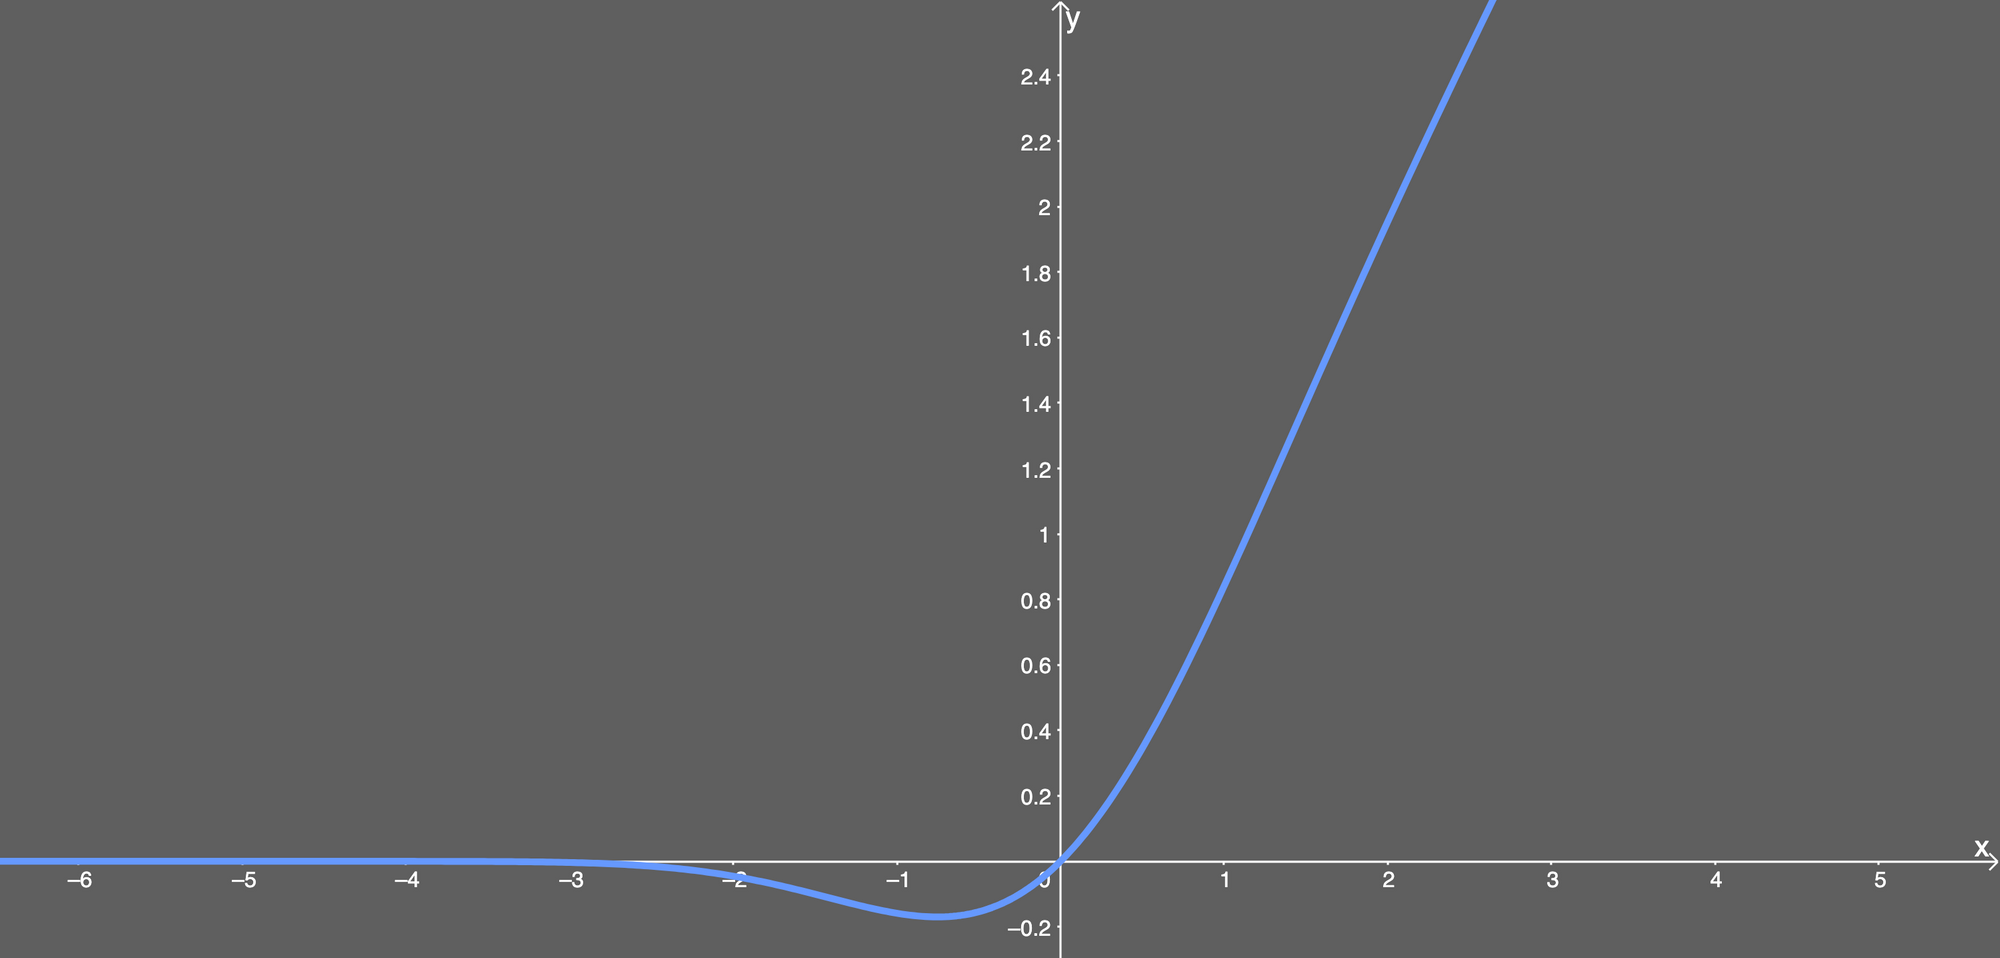 gelu activation function with its slightly negative values at first, then linear once x equals 1